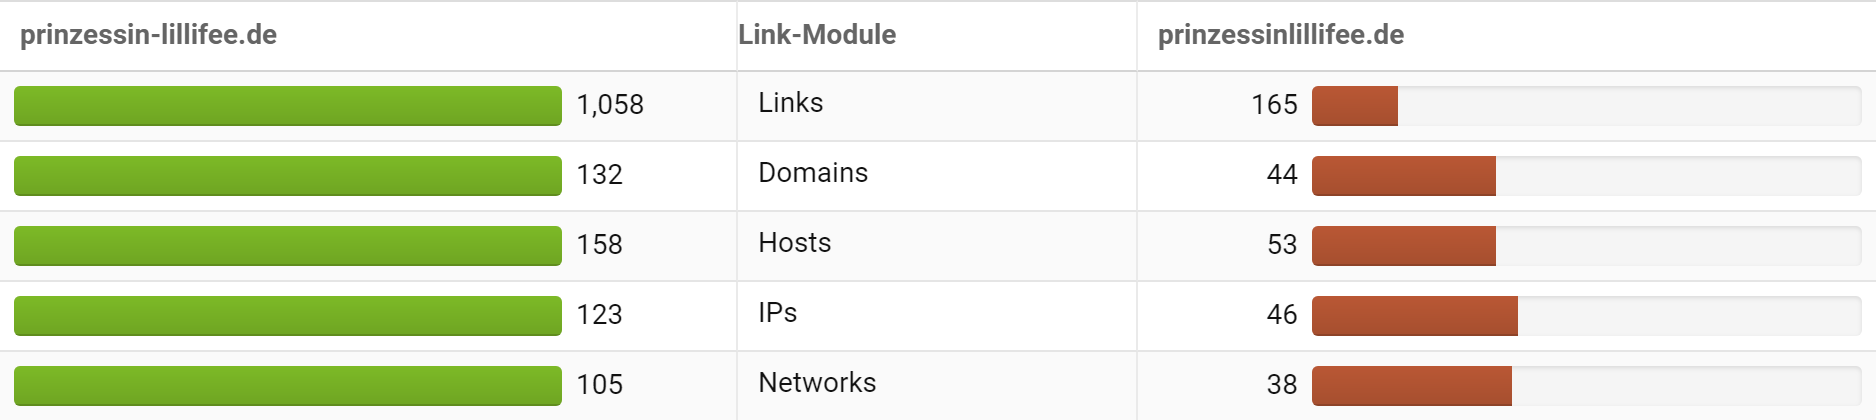 Image showing link distribution across two domains